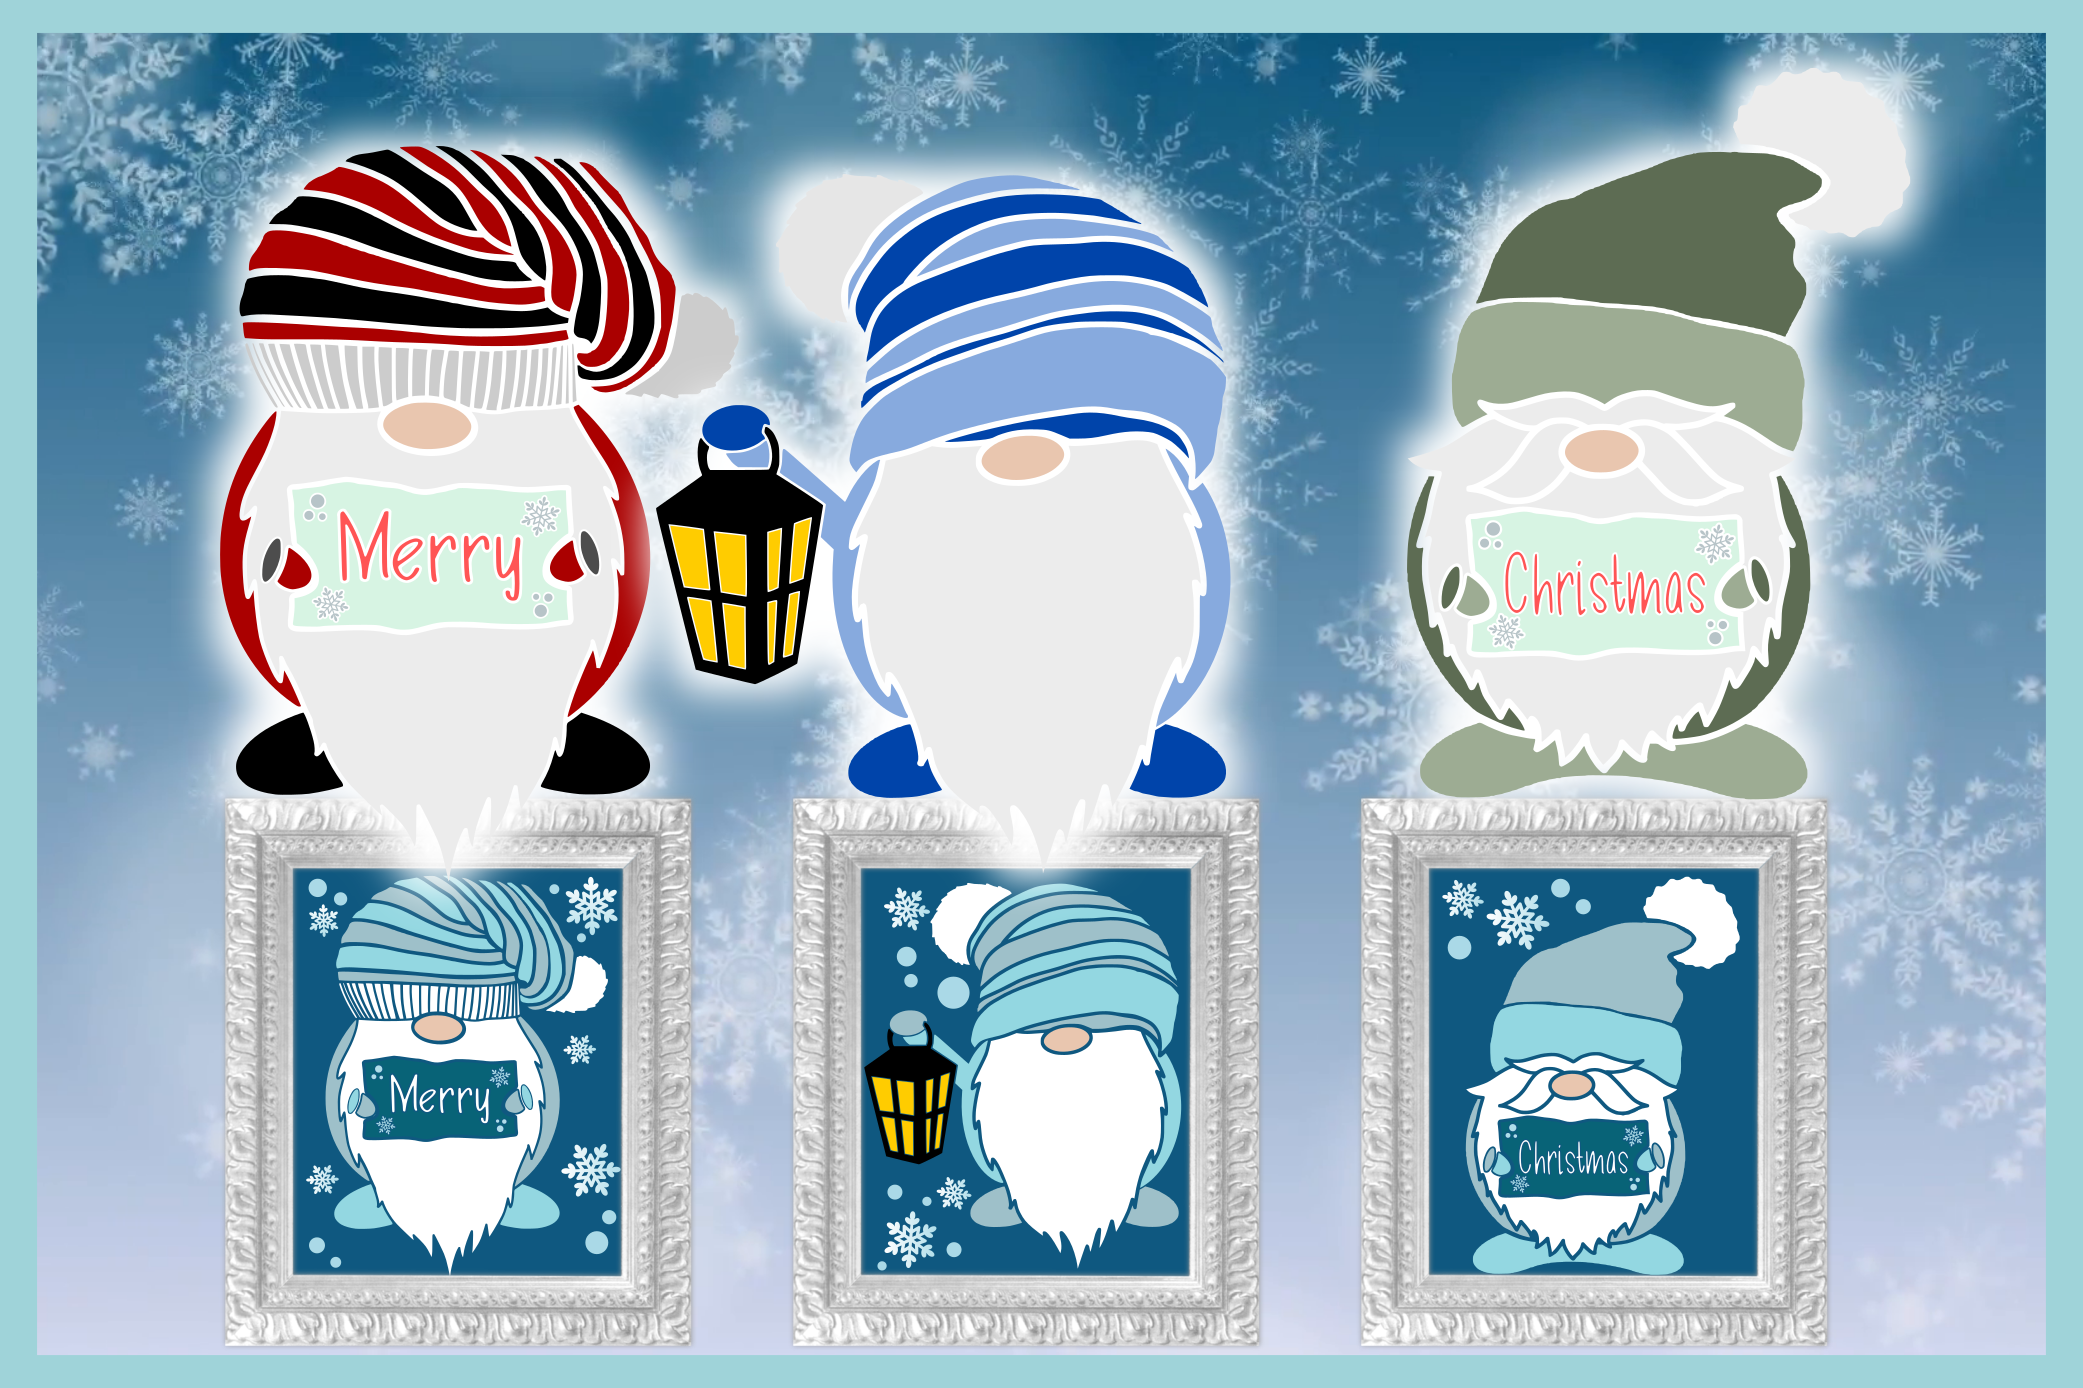 Merry Christmas Gnomes SVG Dxf Eps Png Pdf Files For Cricut example image 3